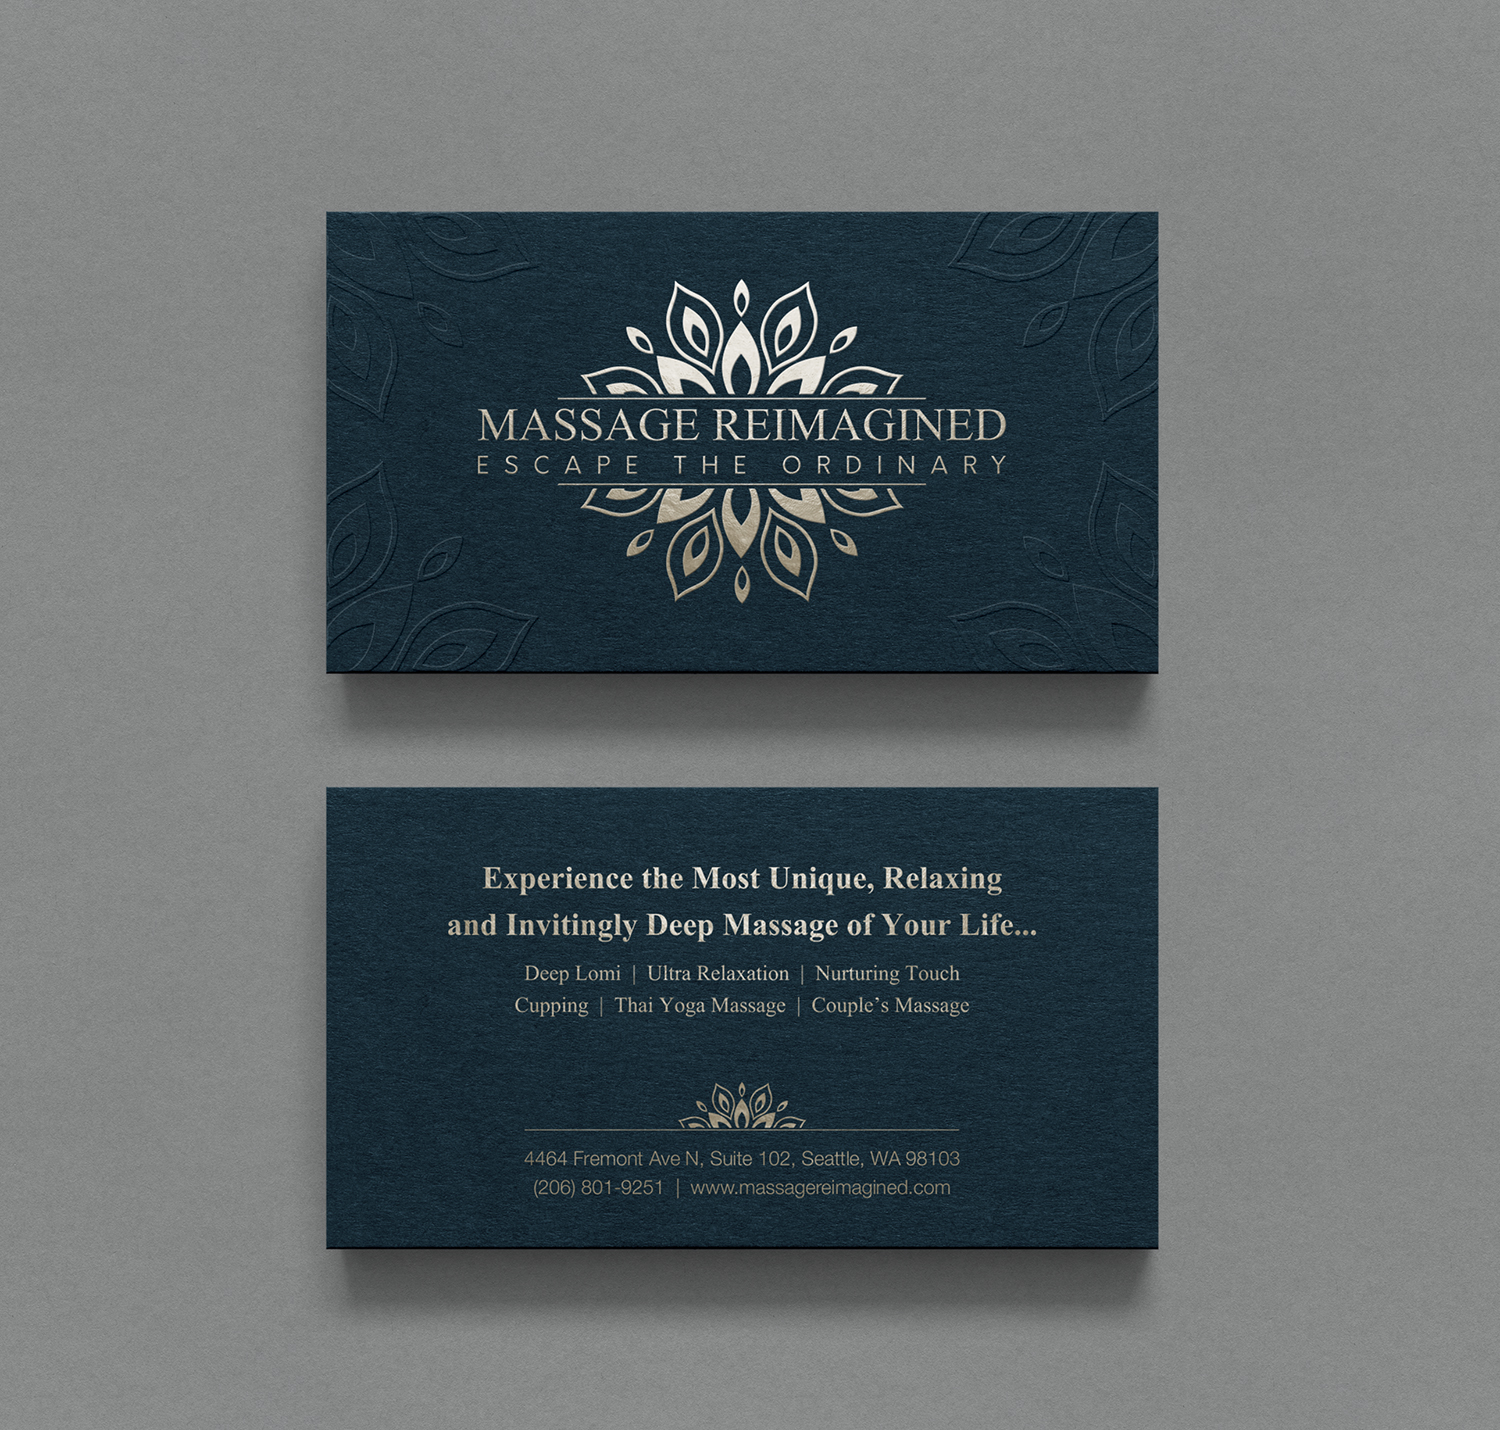 Elegant playful massage business card design for a company by business card design by logodentity for this project design 16331209 colourmoves